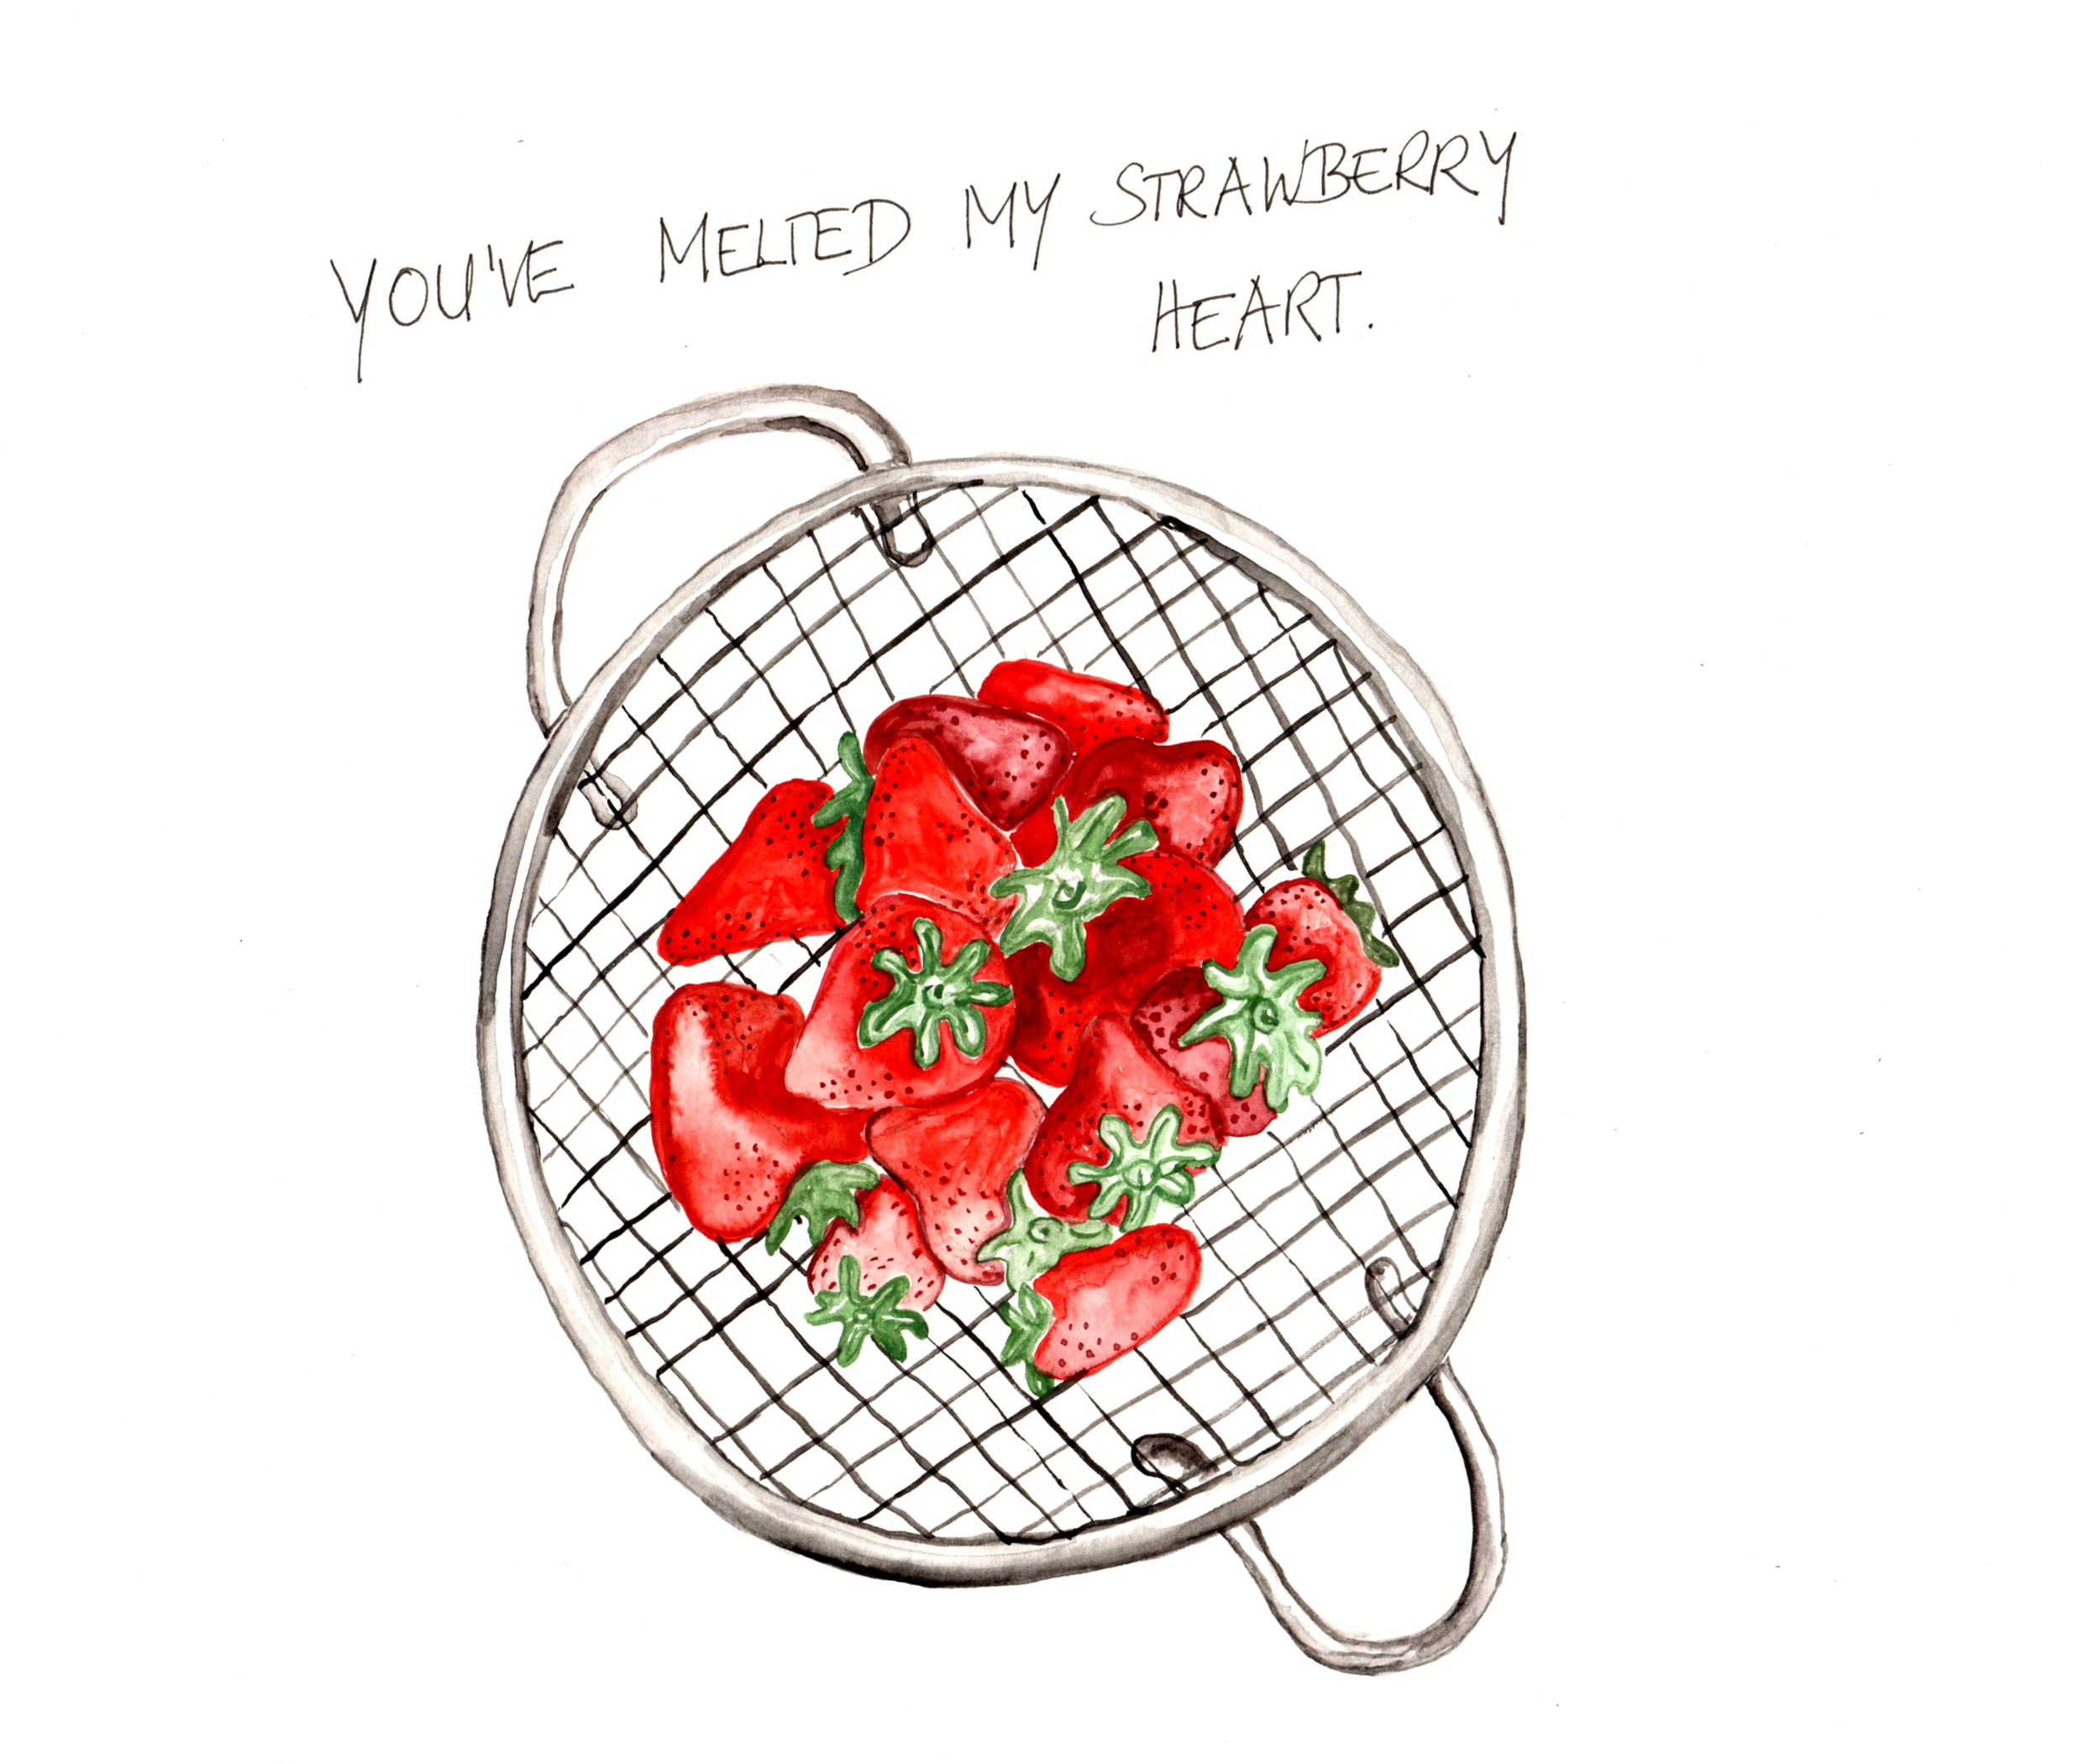 Strawberry Is A Verb